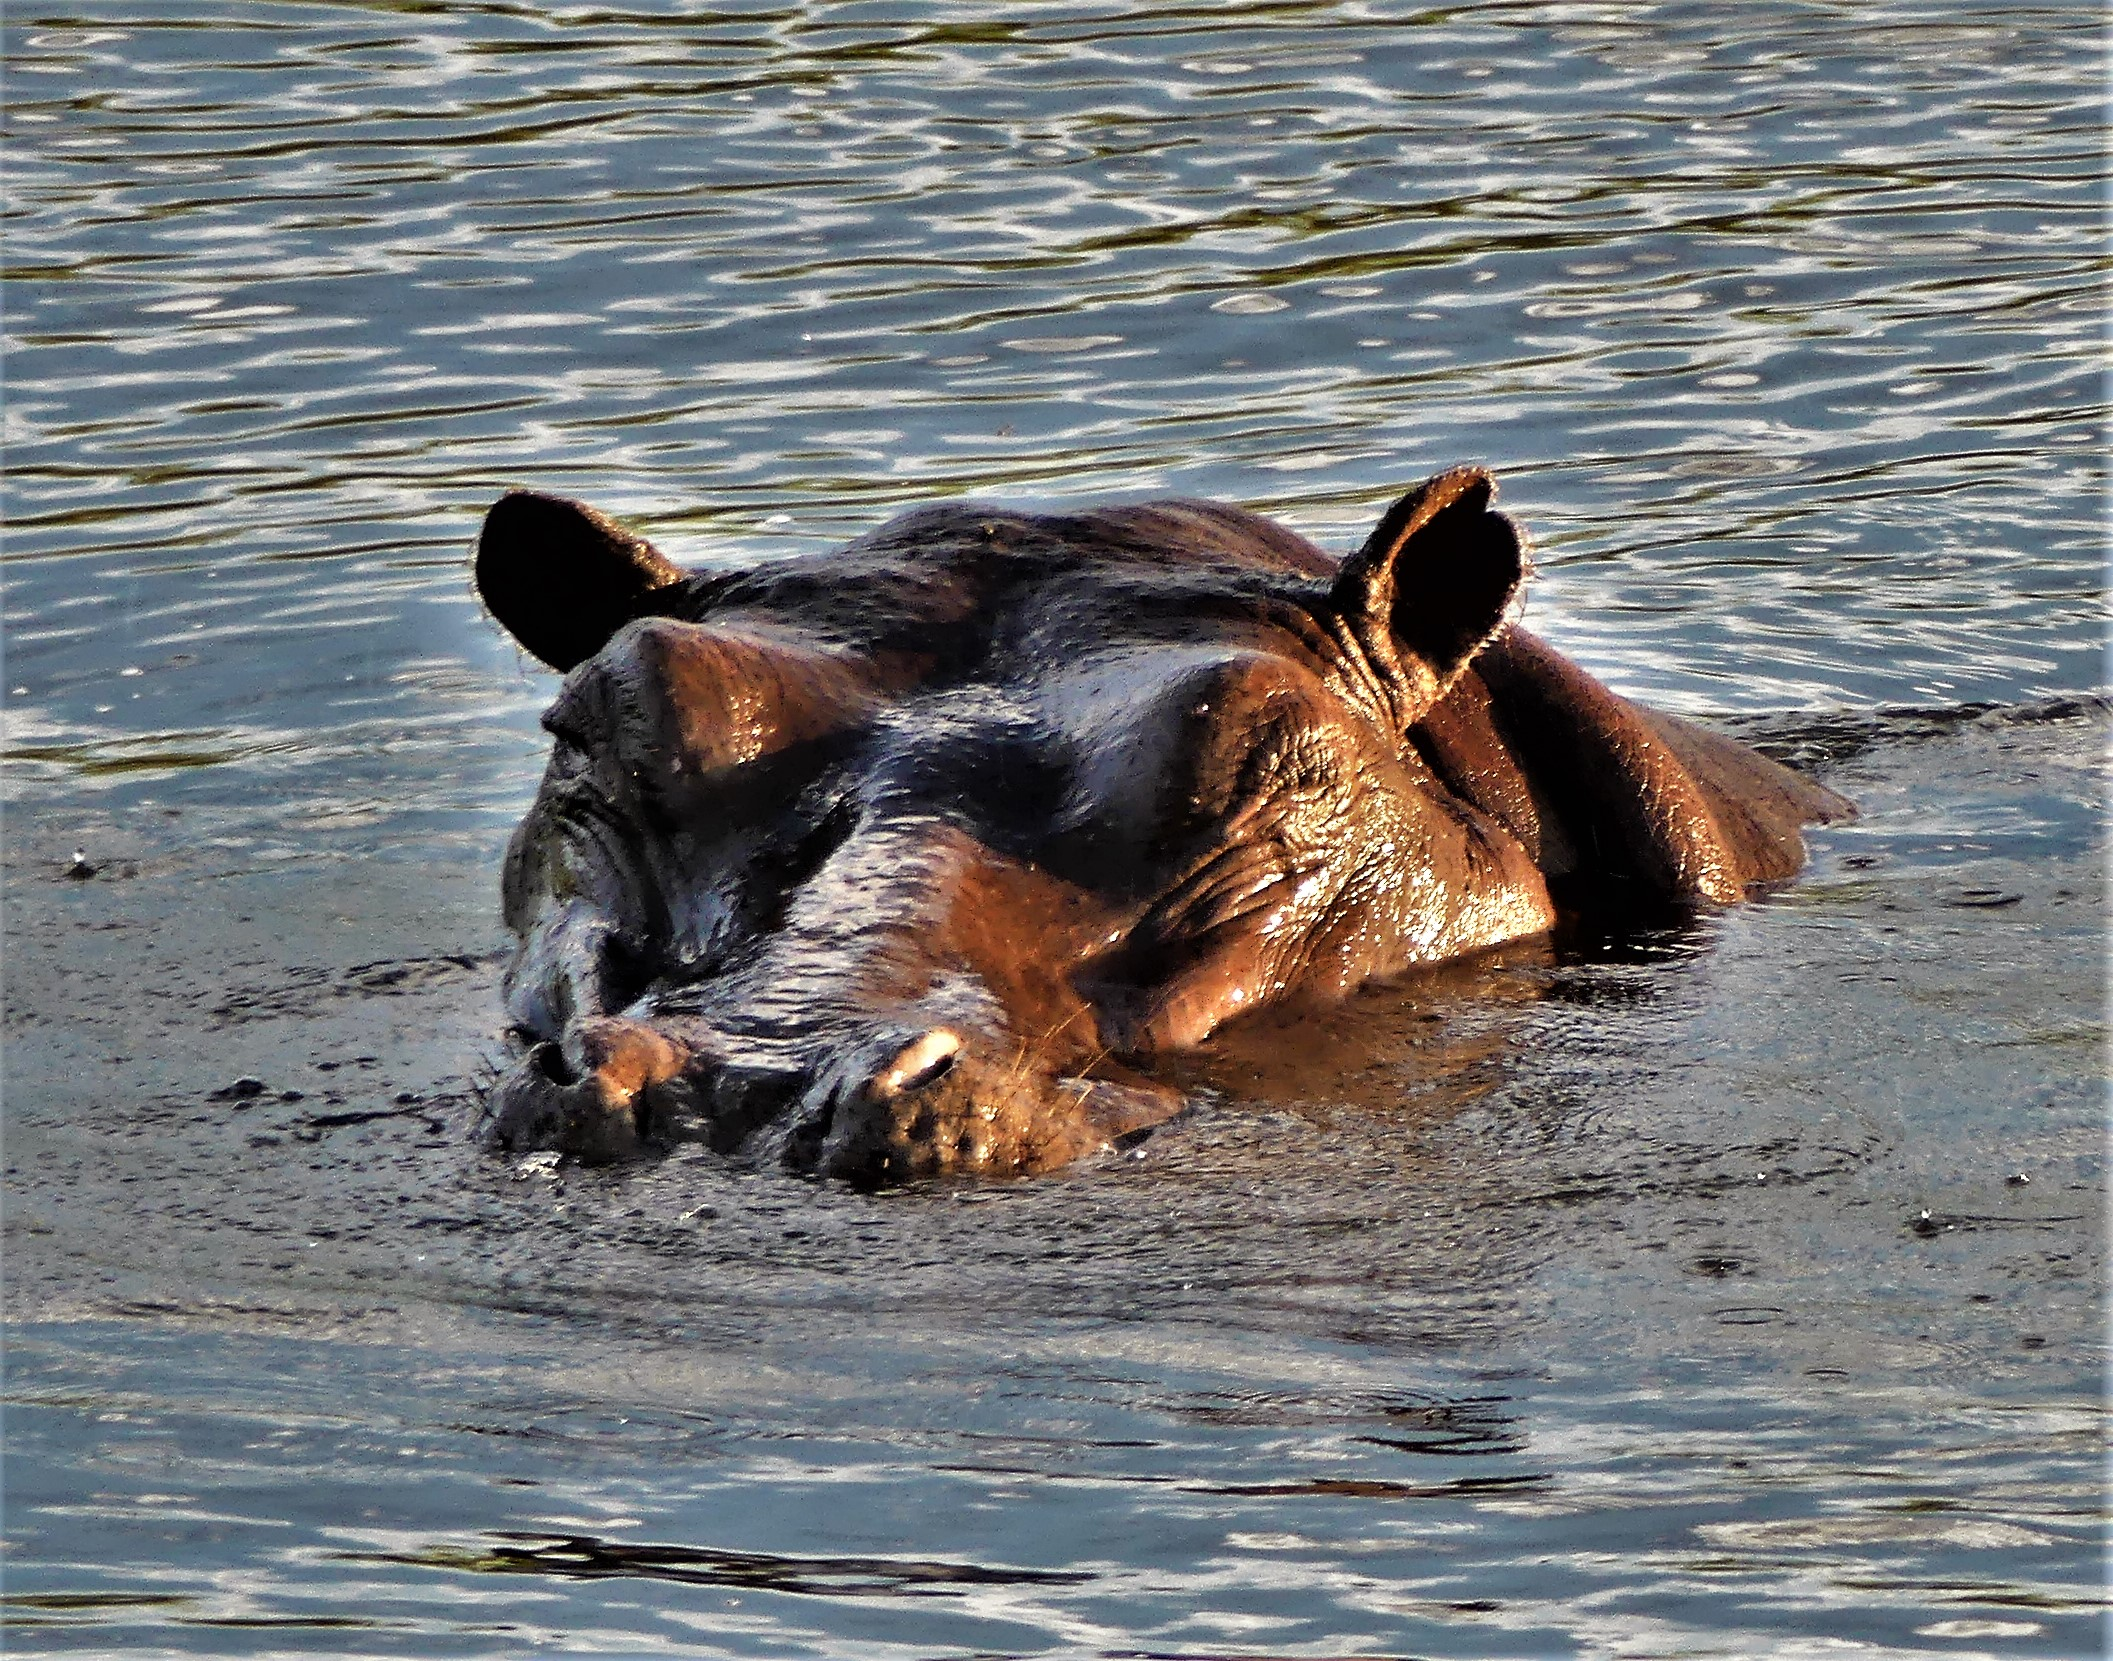 napping in the water